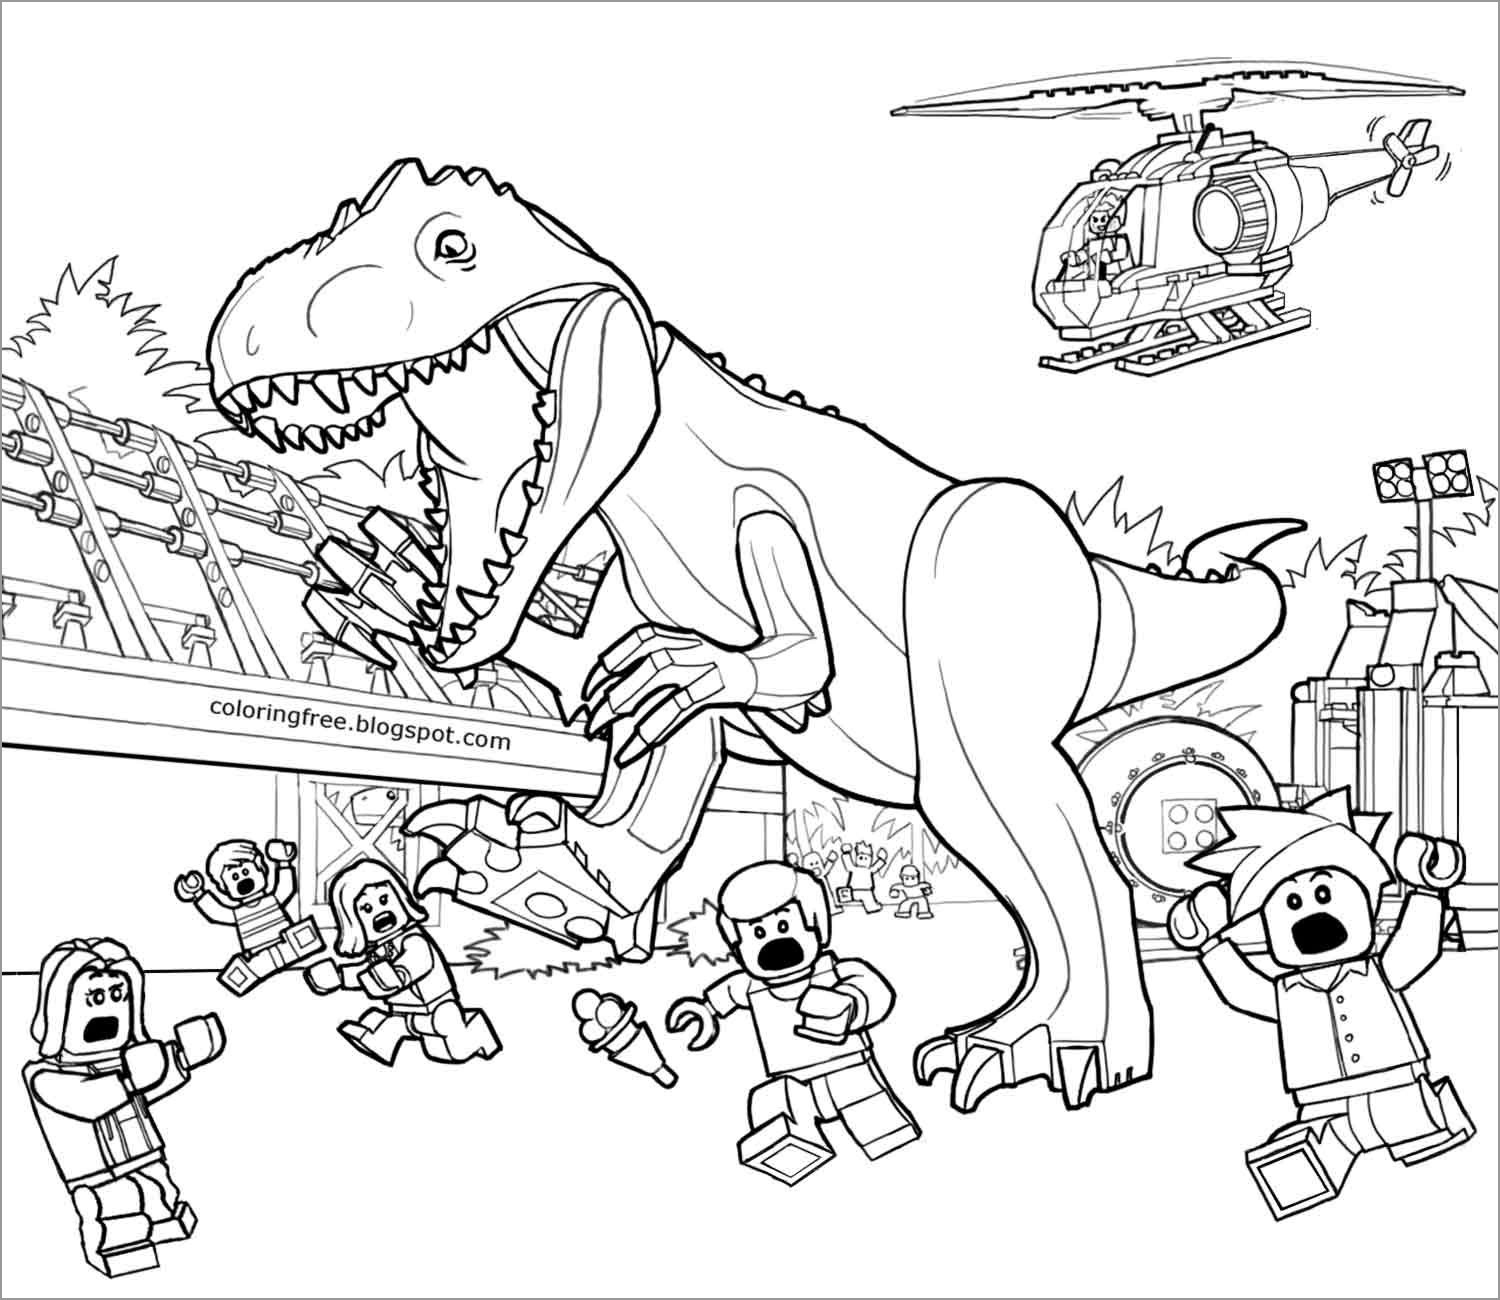 Jurassic World Lego Dinosaurs Coloring Page